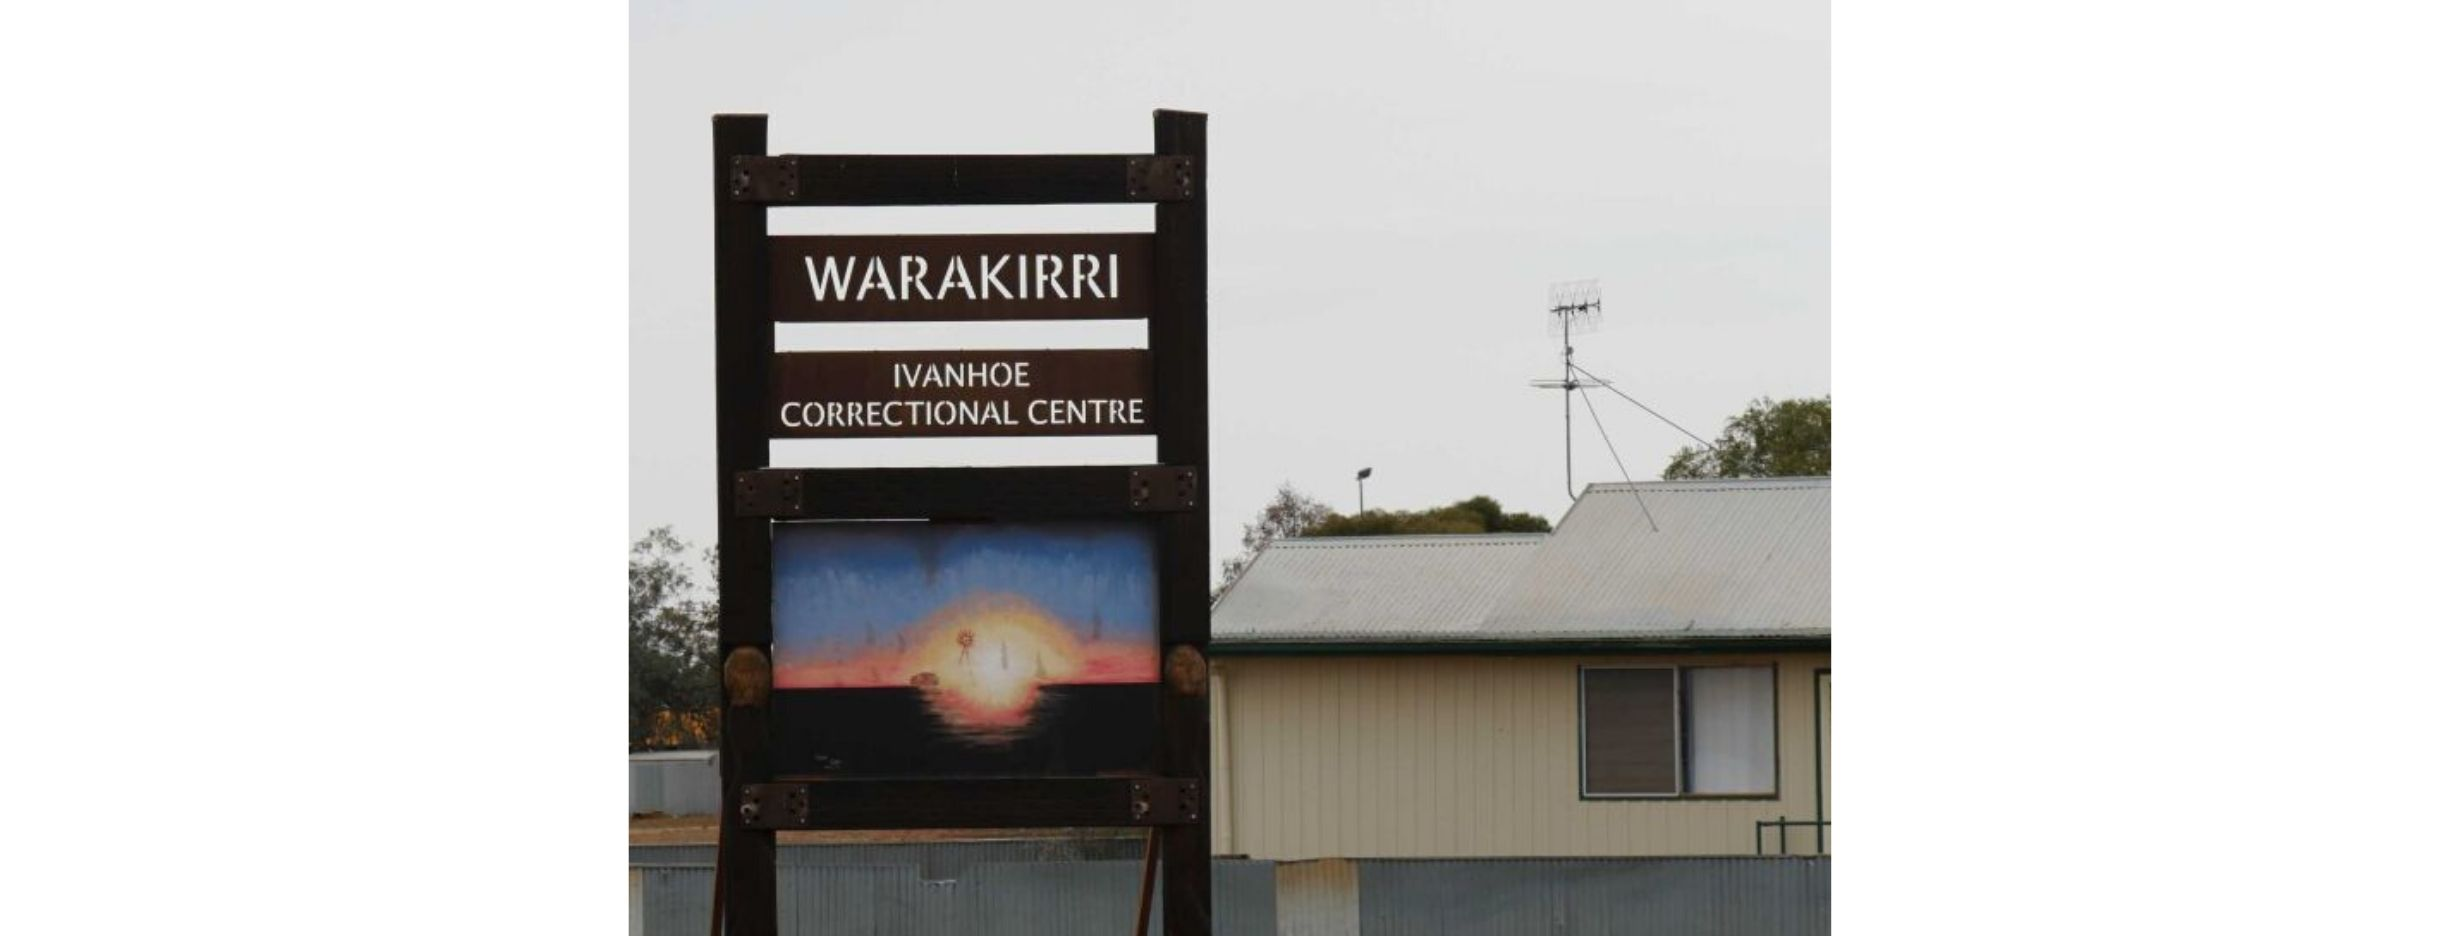 Update on the closure of the Ivanhoe Correctional Centre Image